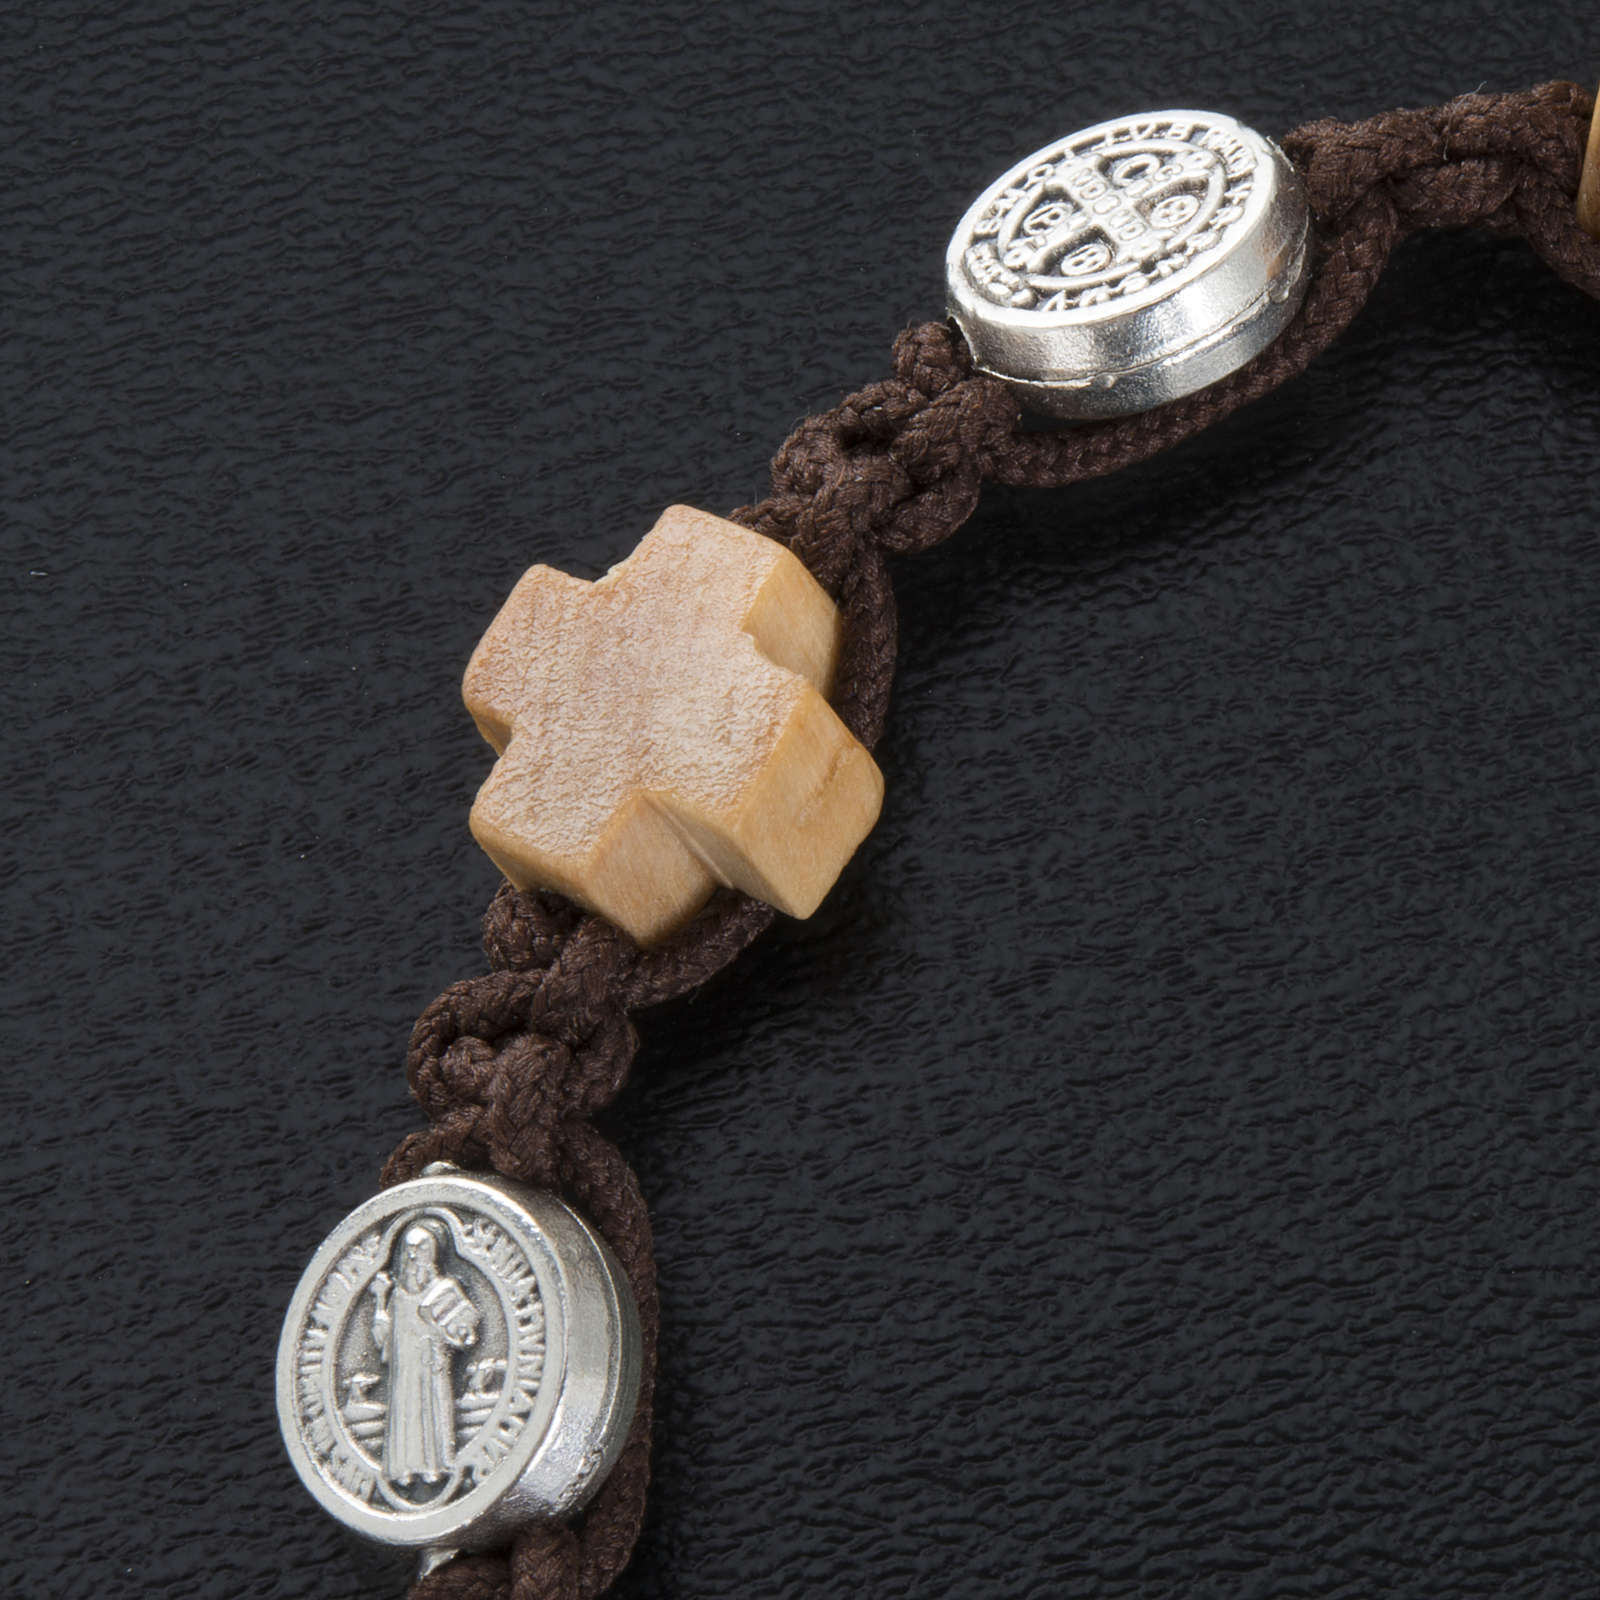 Bracelet with crosses and St. Benedict's medals 4